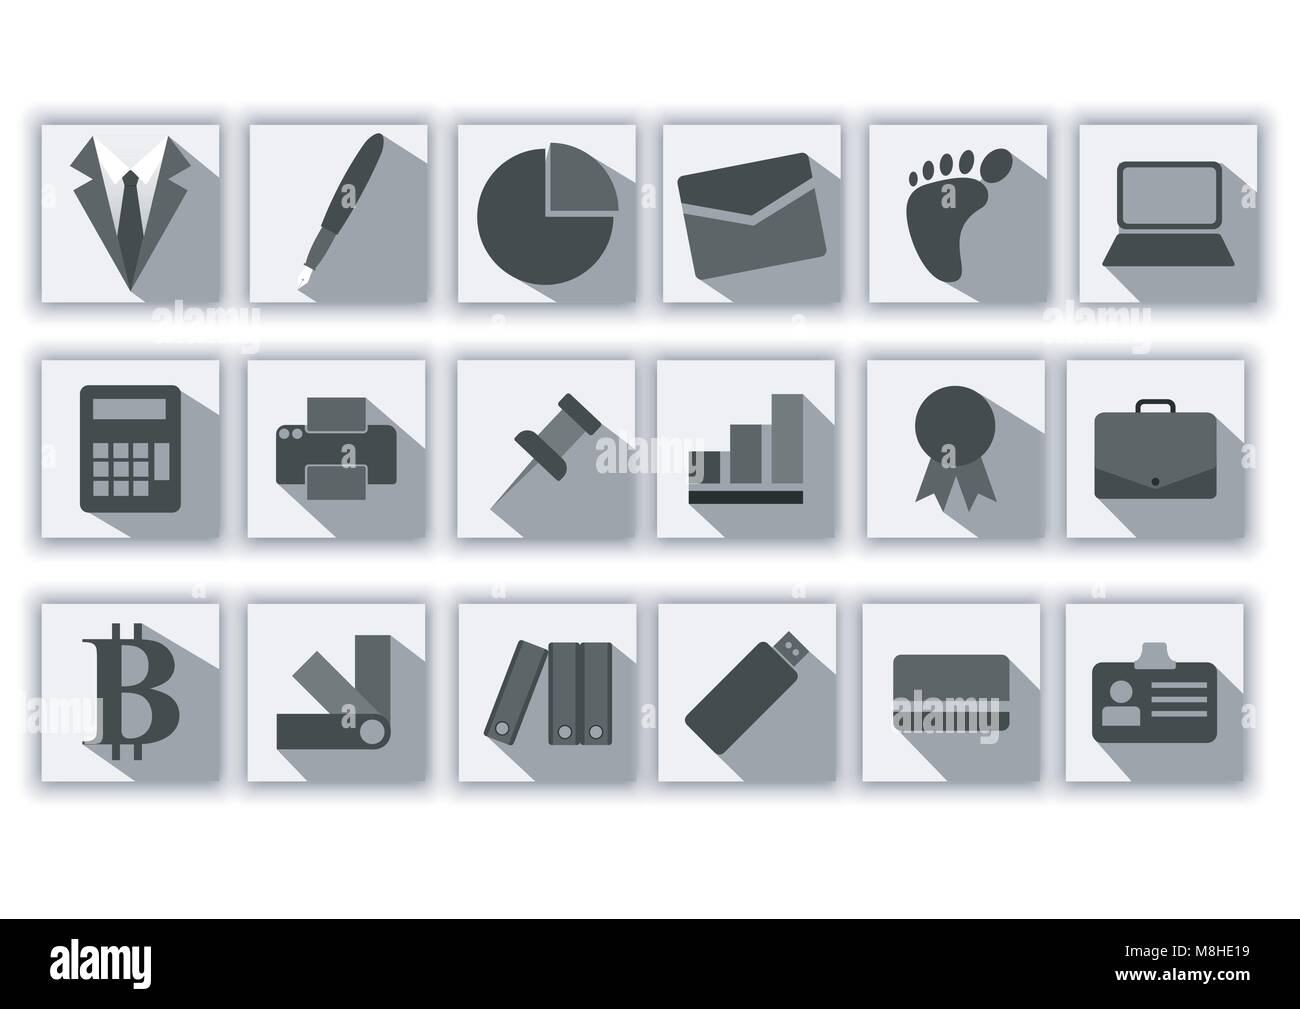 Design Vector Of Icon Pack Greyscale Color Stock Vector Image Art Alamy